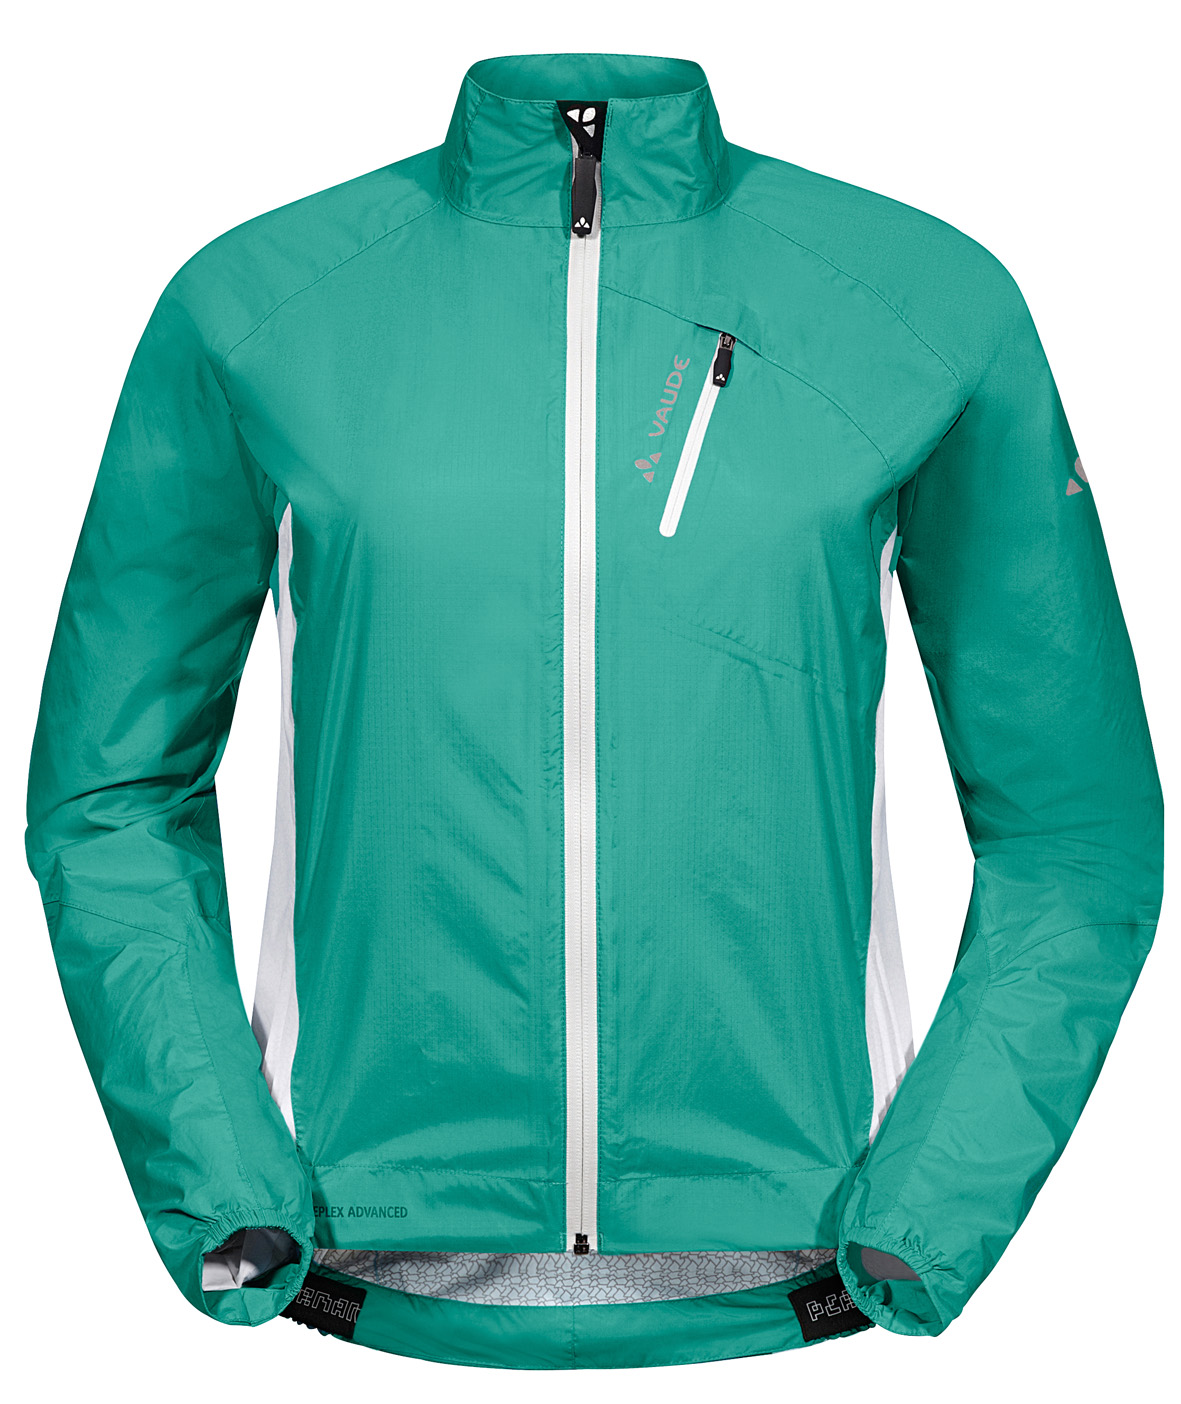 VAUDE Women´s Spray Jacket IV lotus green Größe 40 - VAUDE Women´s Spray Jacket IV lotus green Größe 40